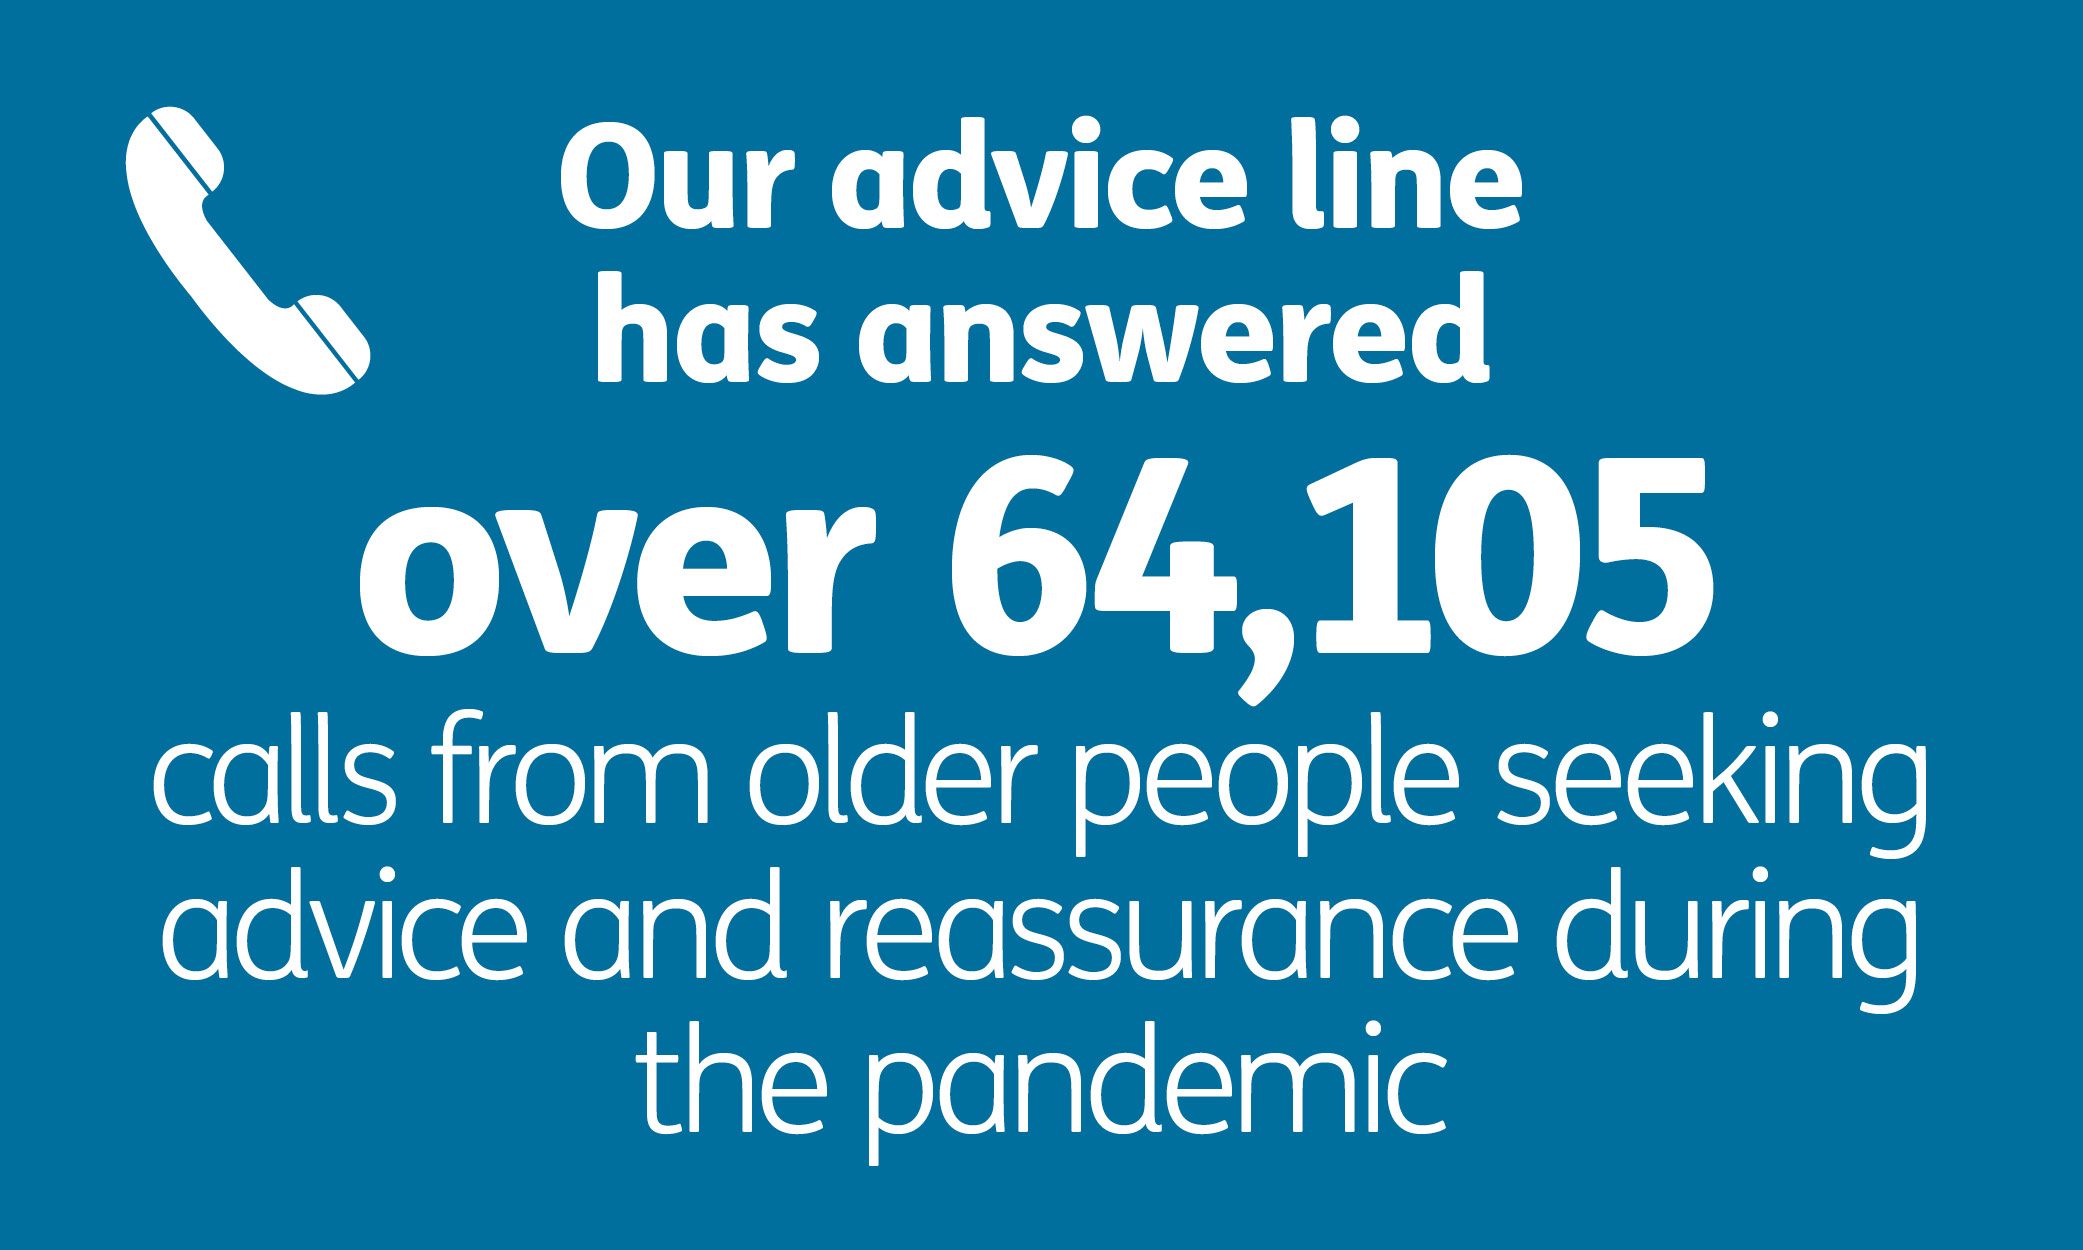 46,257 calls for help answered by our advice line